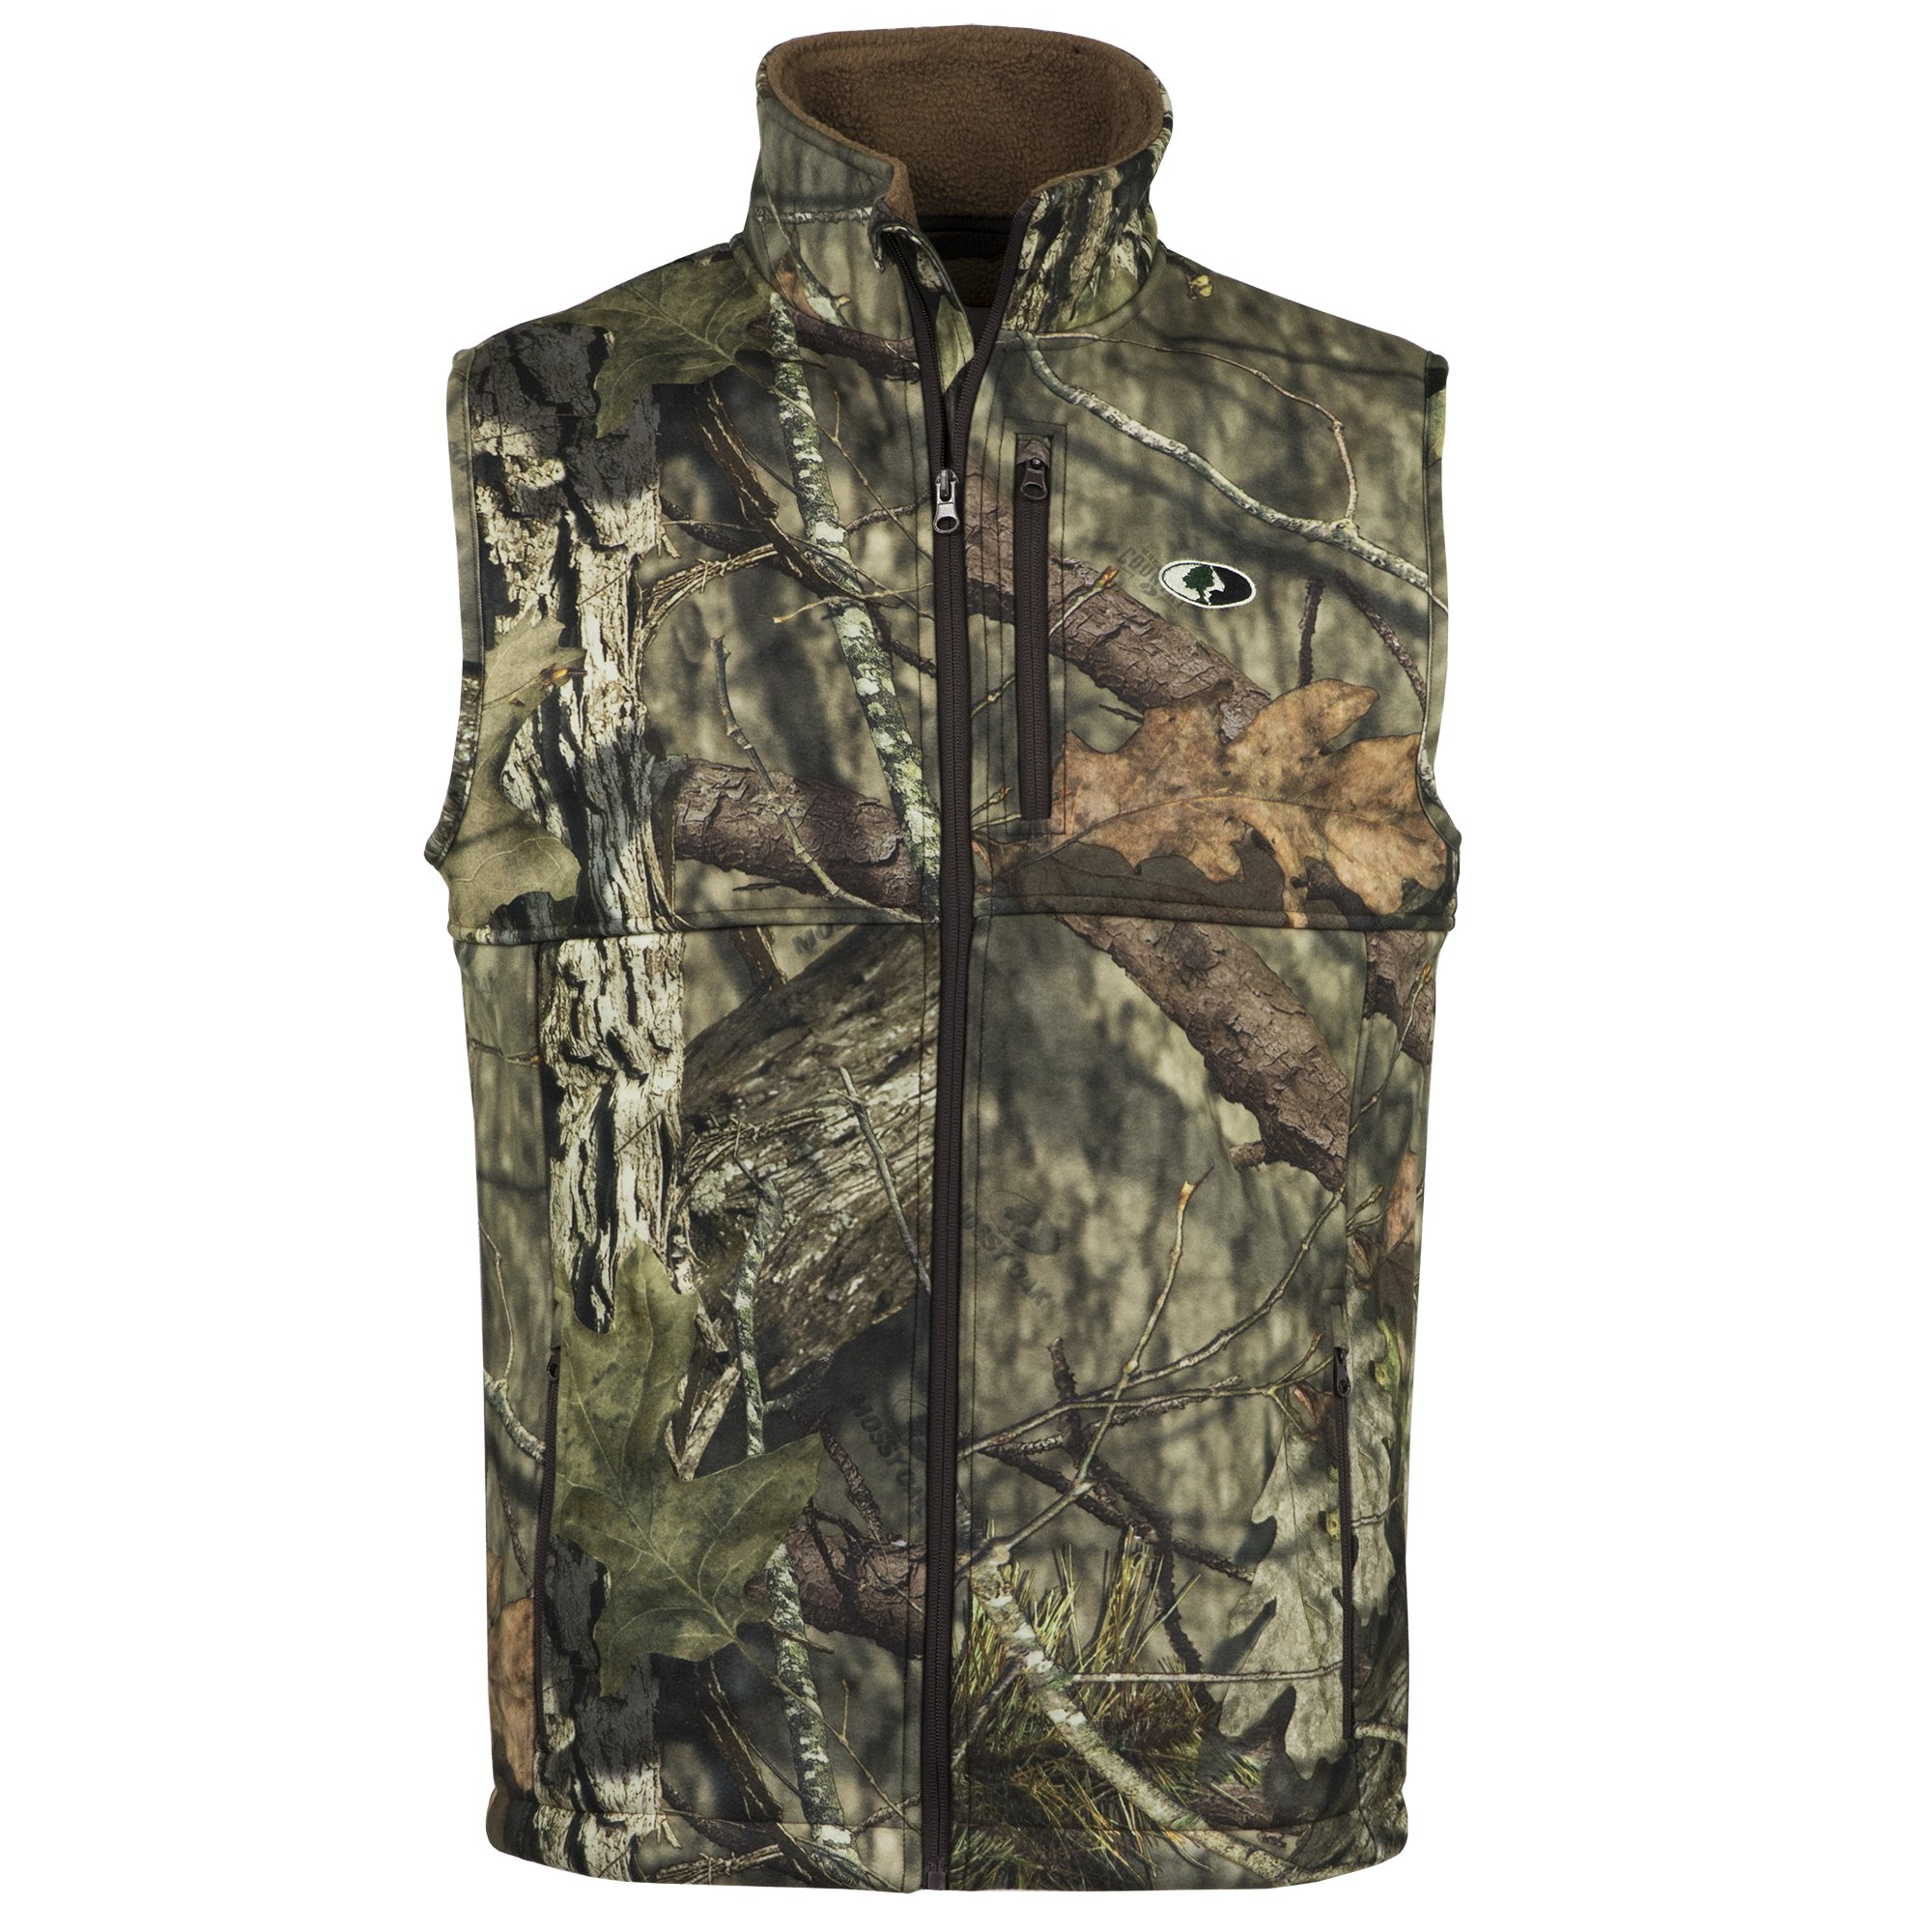 Mossy Oak Youth Camo Sherpa Fleece Lined Hunting Vest in Break-Up Country by Mossy Oak